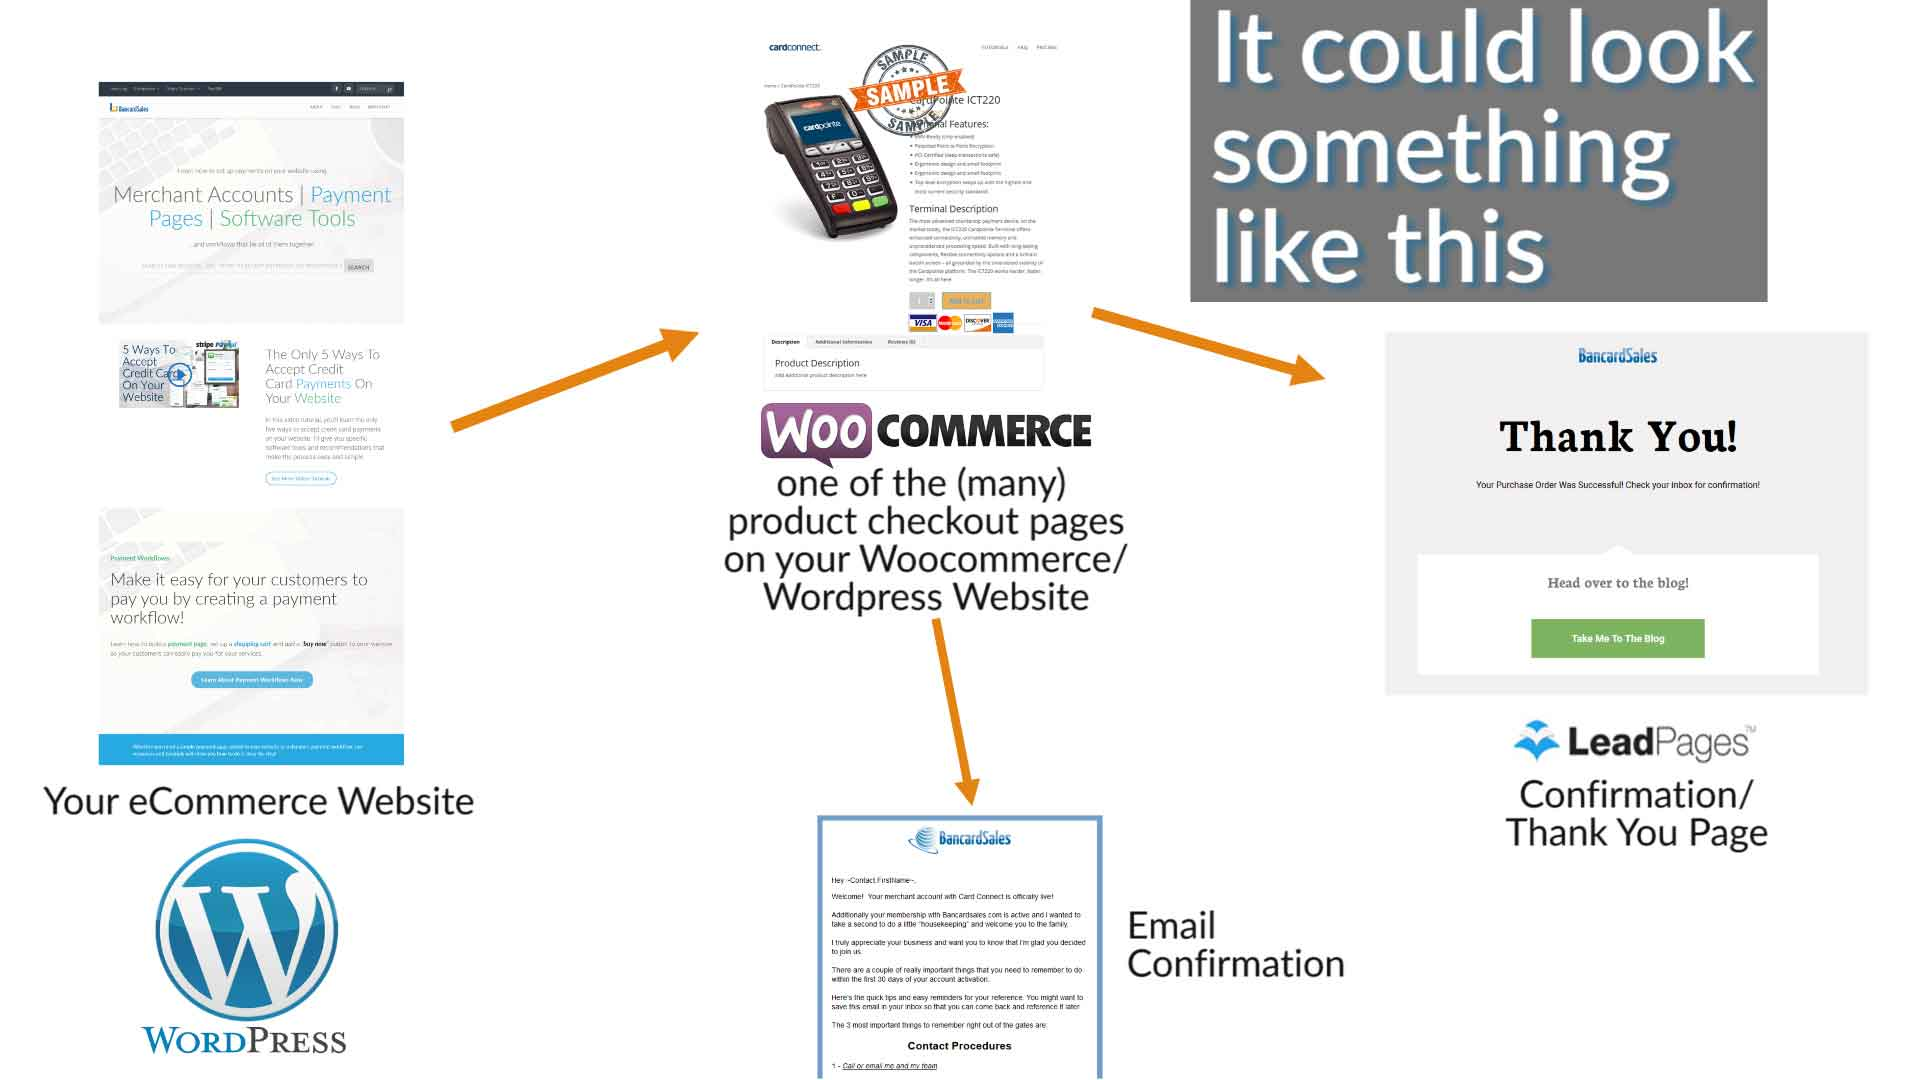 hight resolution of how does credit card processing work online websites payment gateways checkout pages crm software